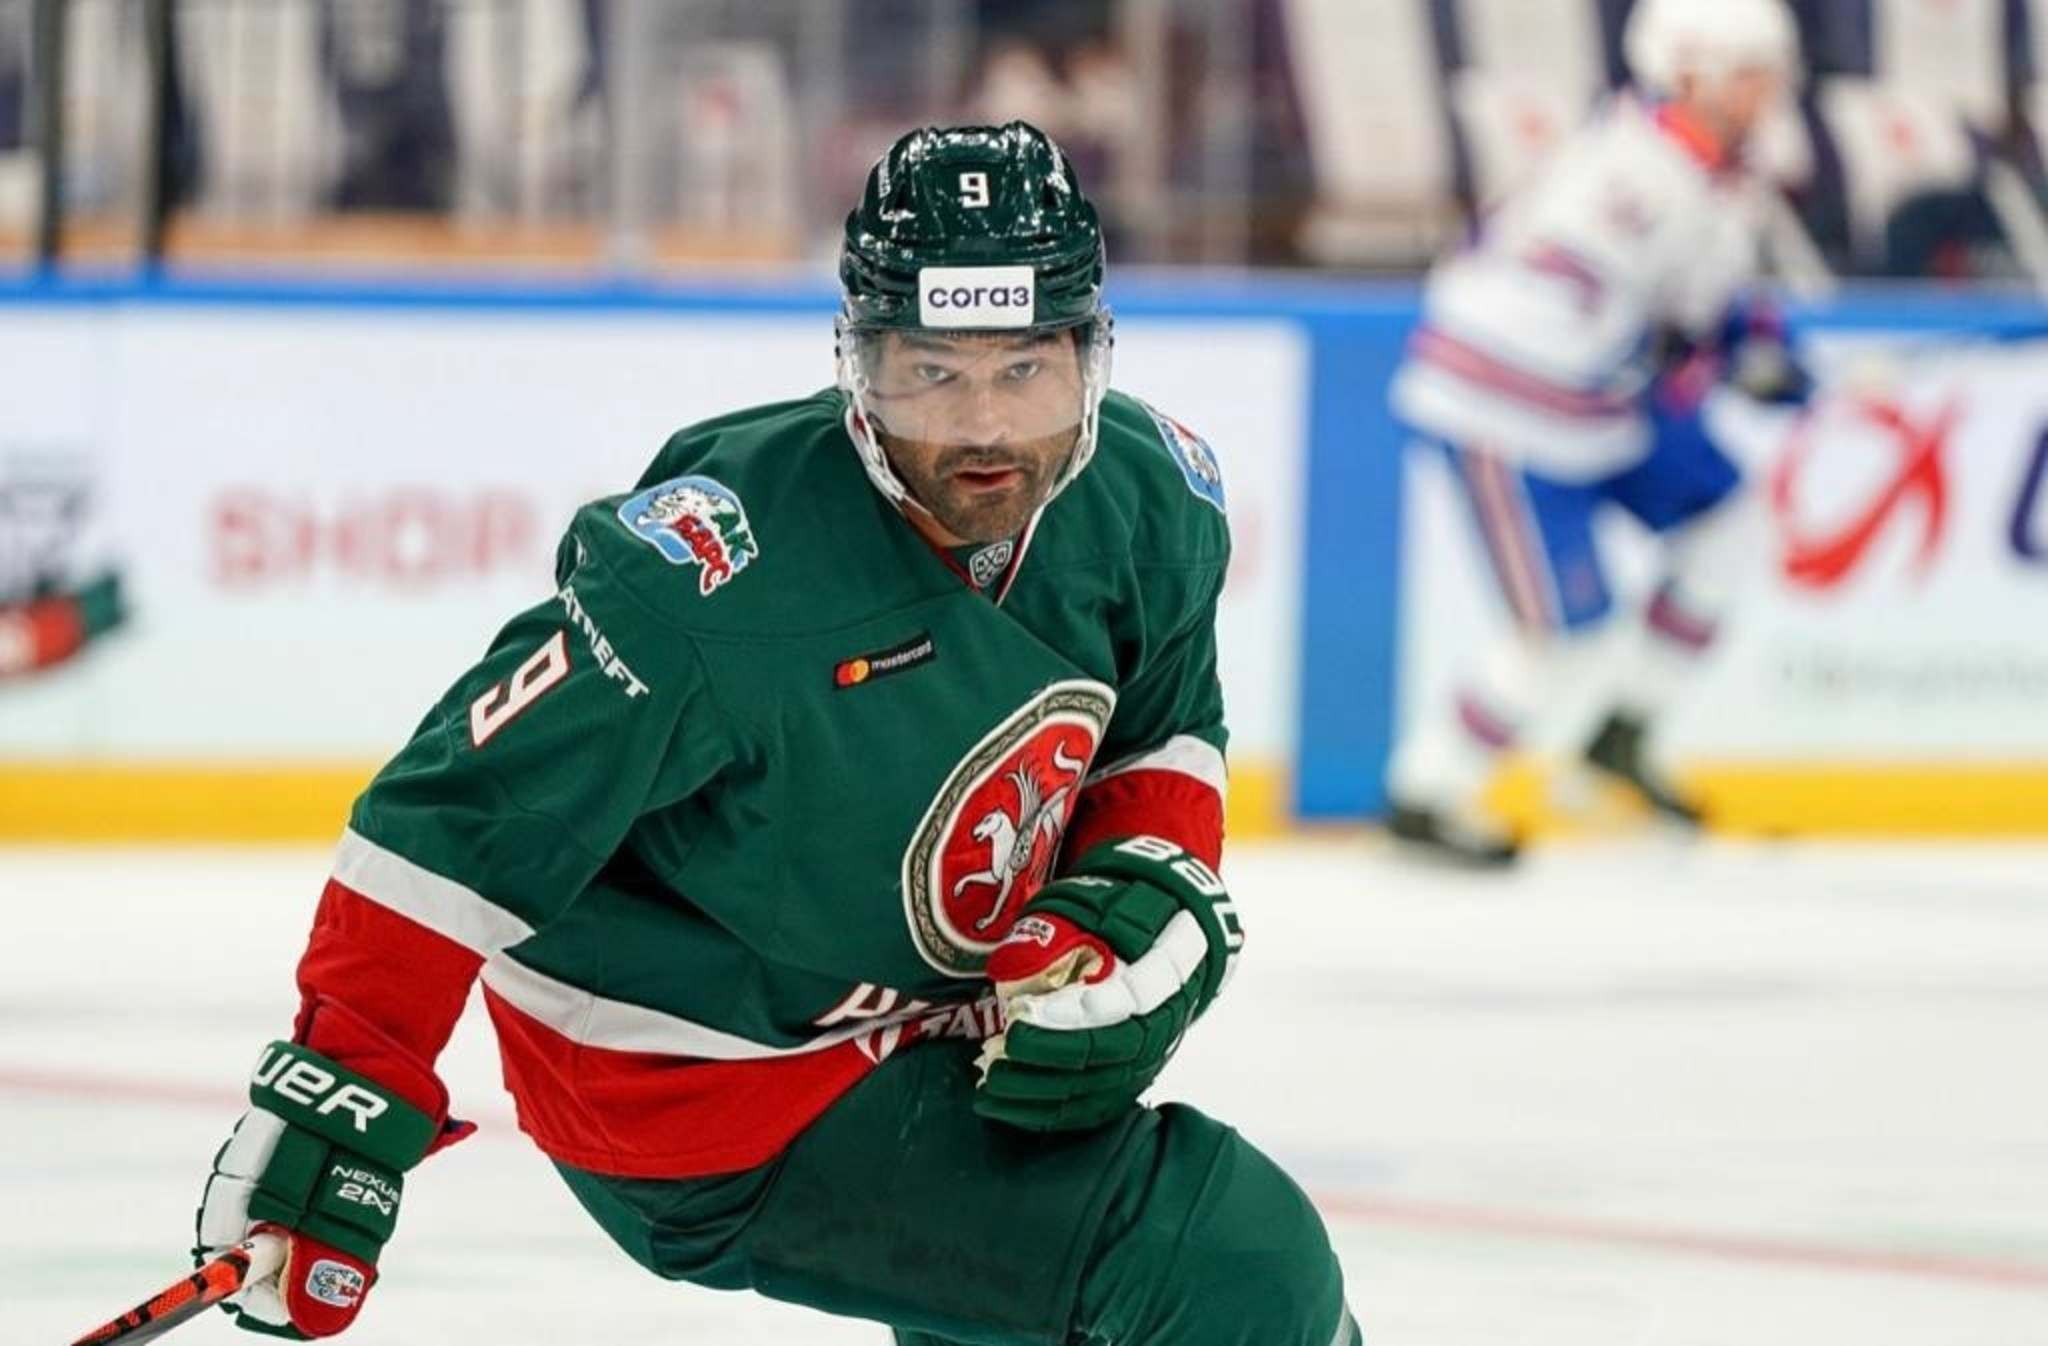 Dawes has five goals and two assists while helping the team to a 9-4 record to start the season. (Ak Bars Kazan photo)